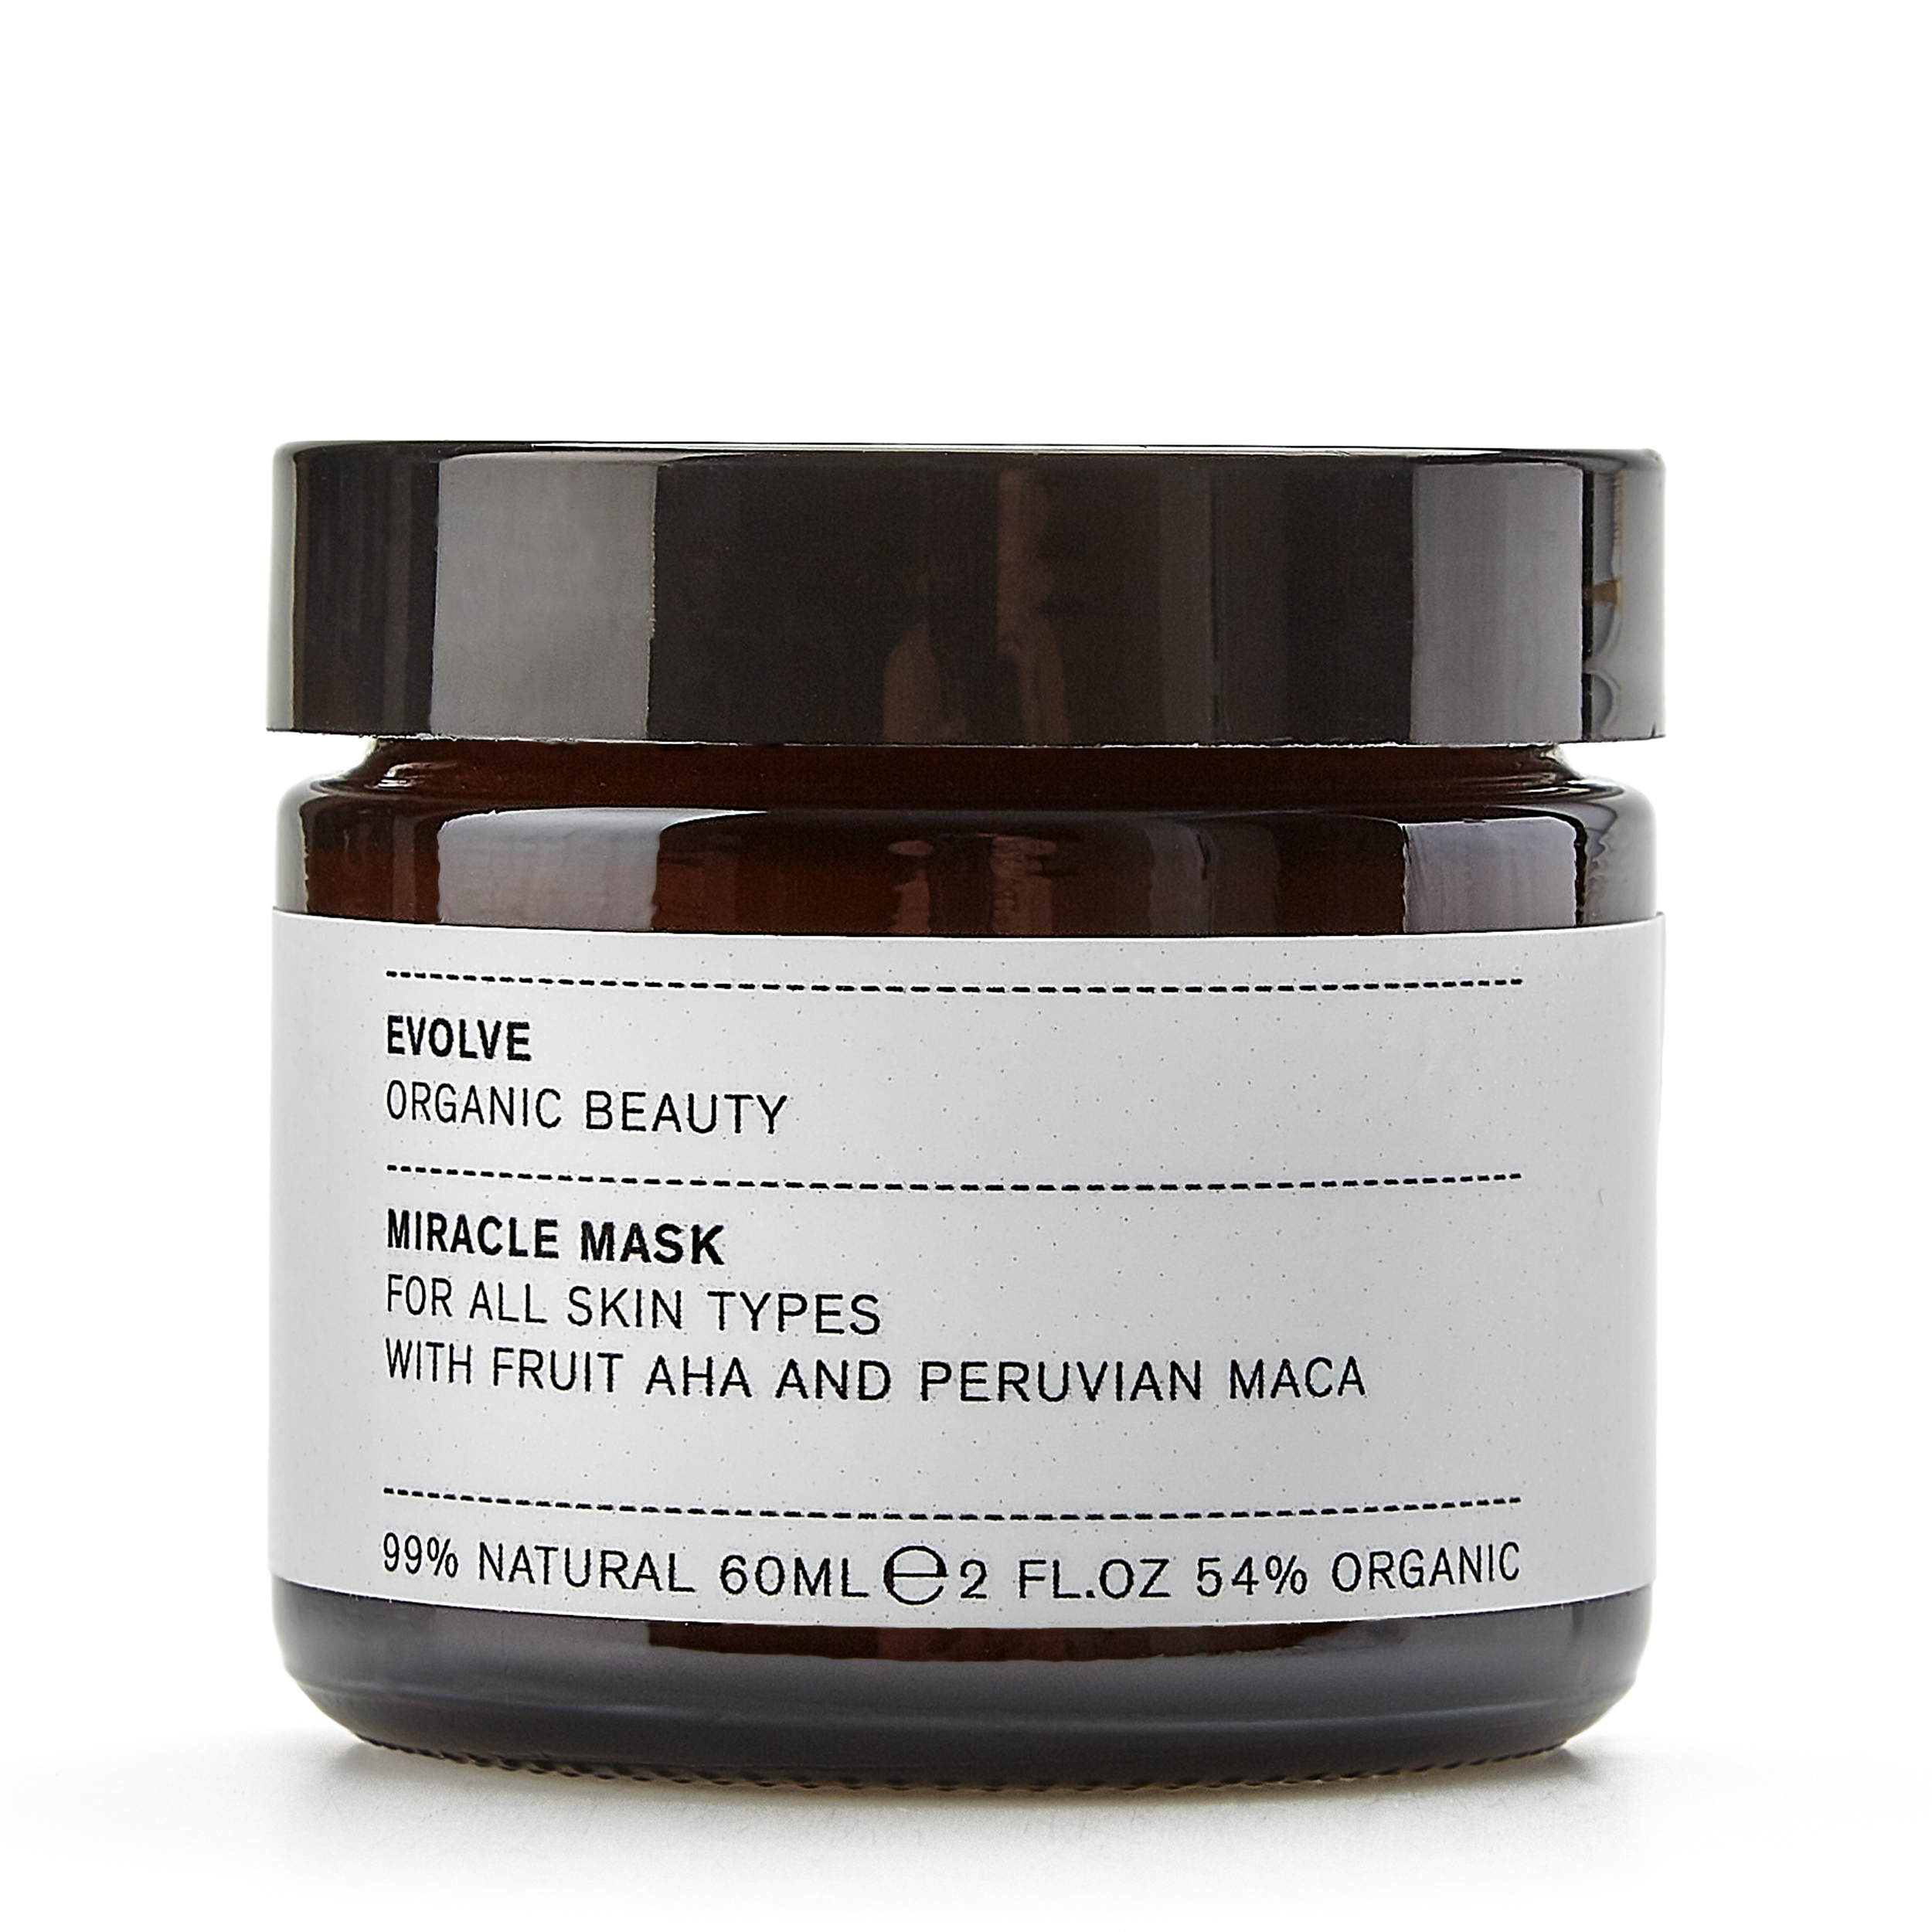 Evolve Organic Beauty Маска для лица «Miracle Mask» 60 мл фото